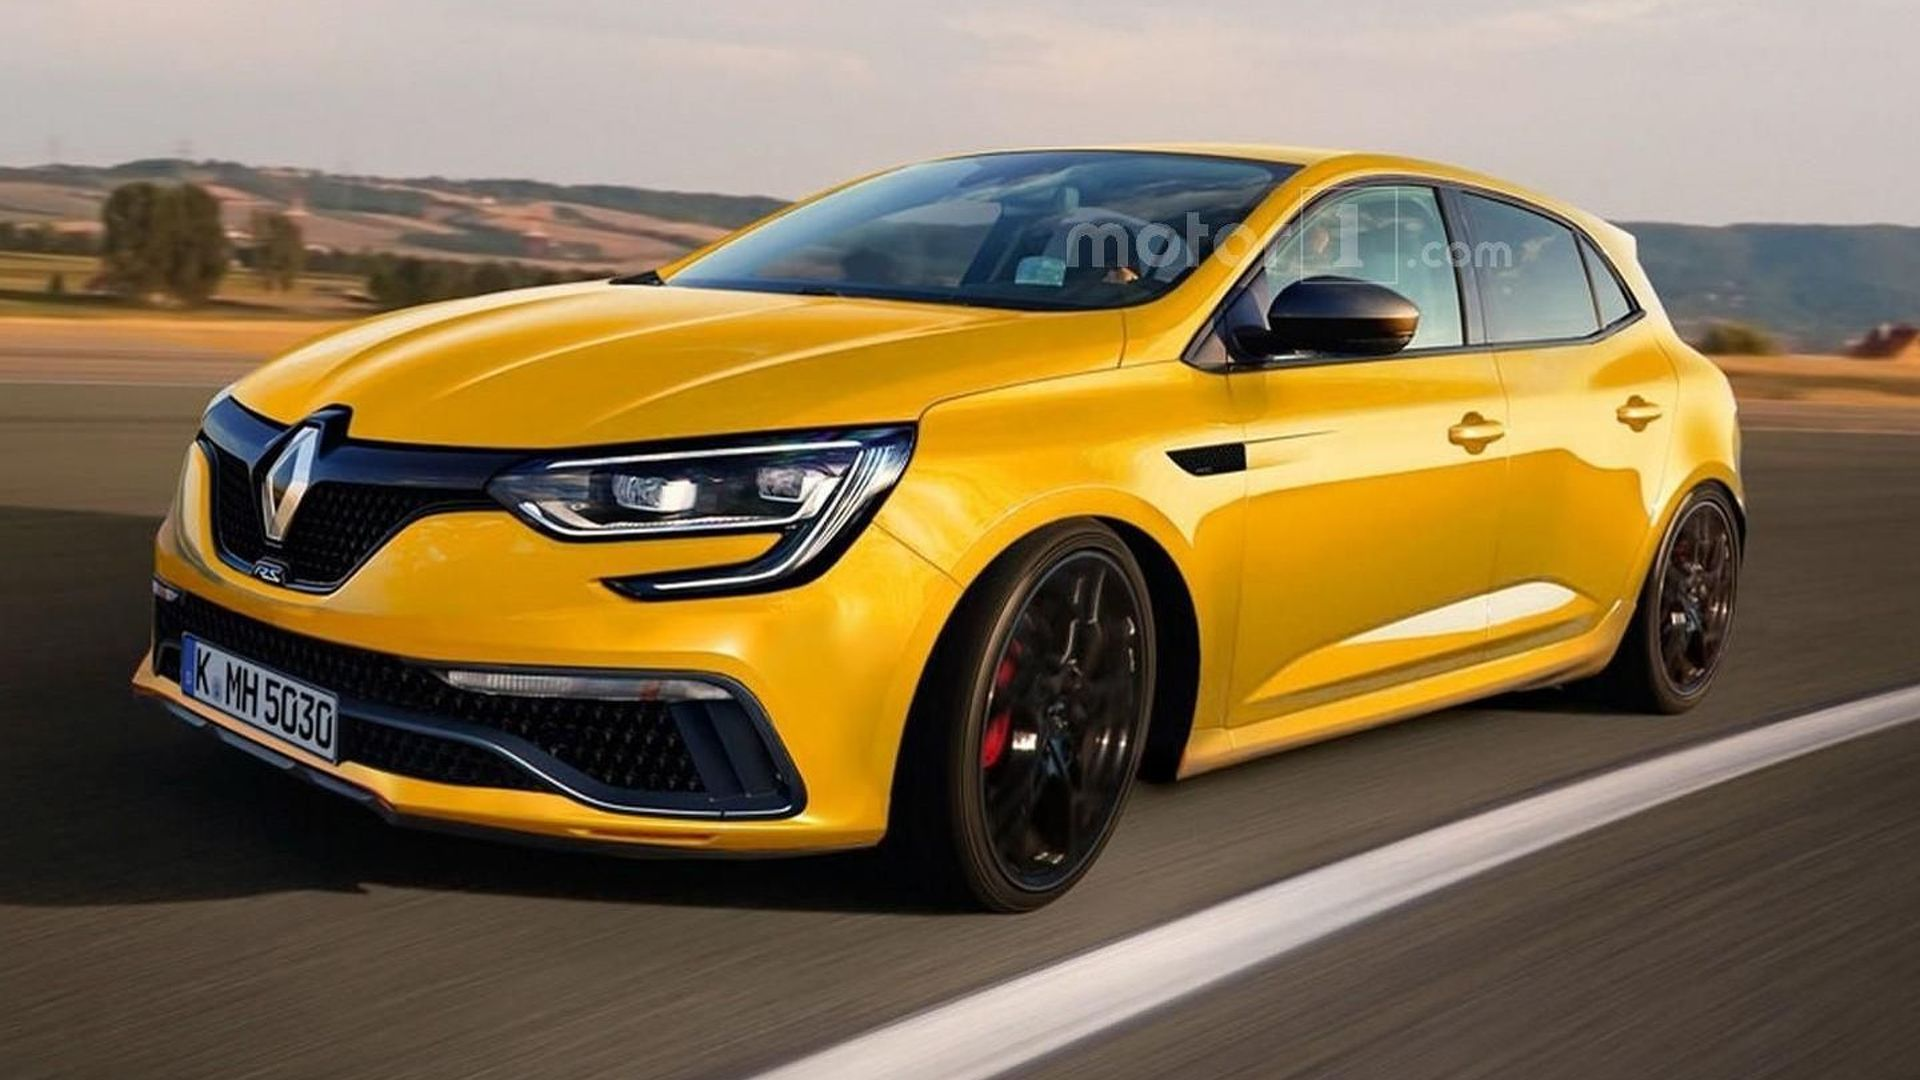 2018 Renault Megane Rs To Have 300 Hp Awd